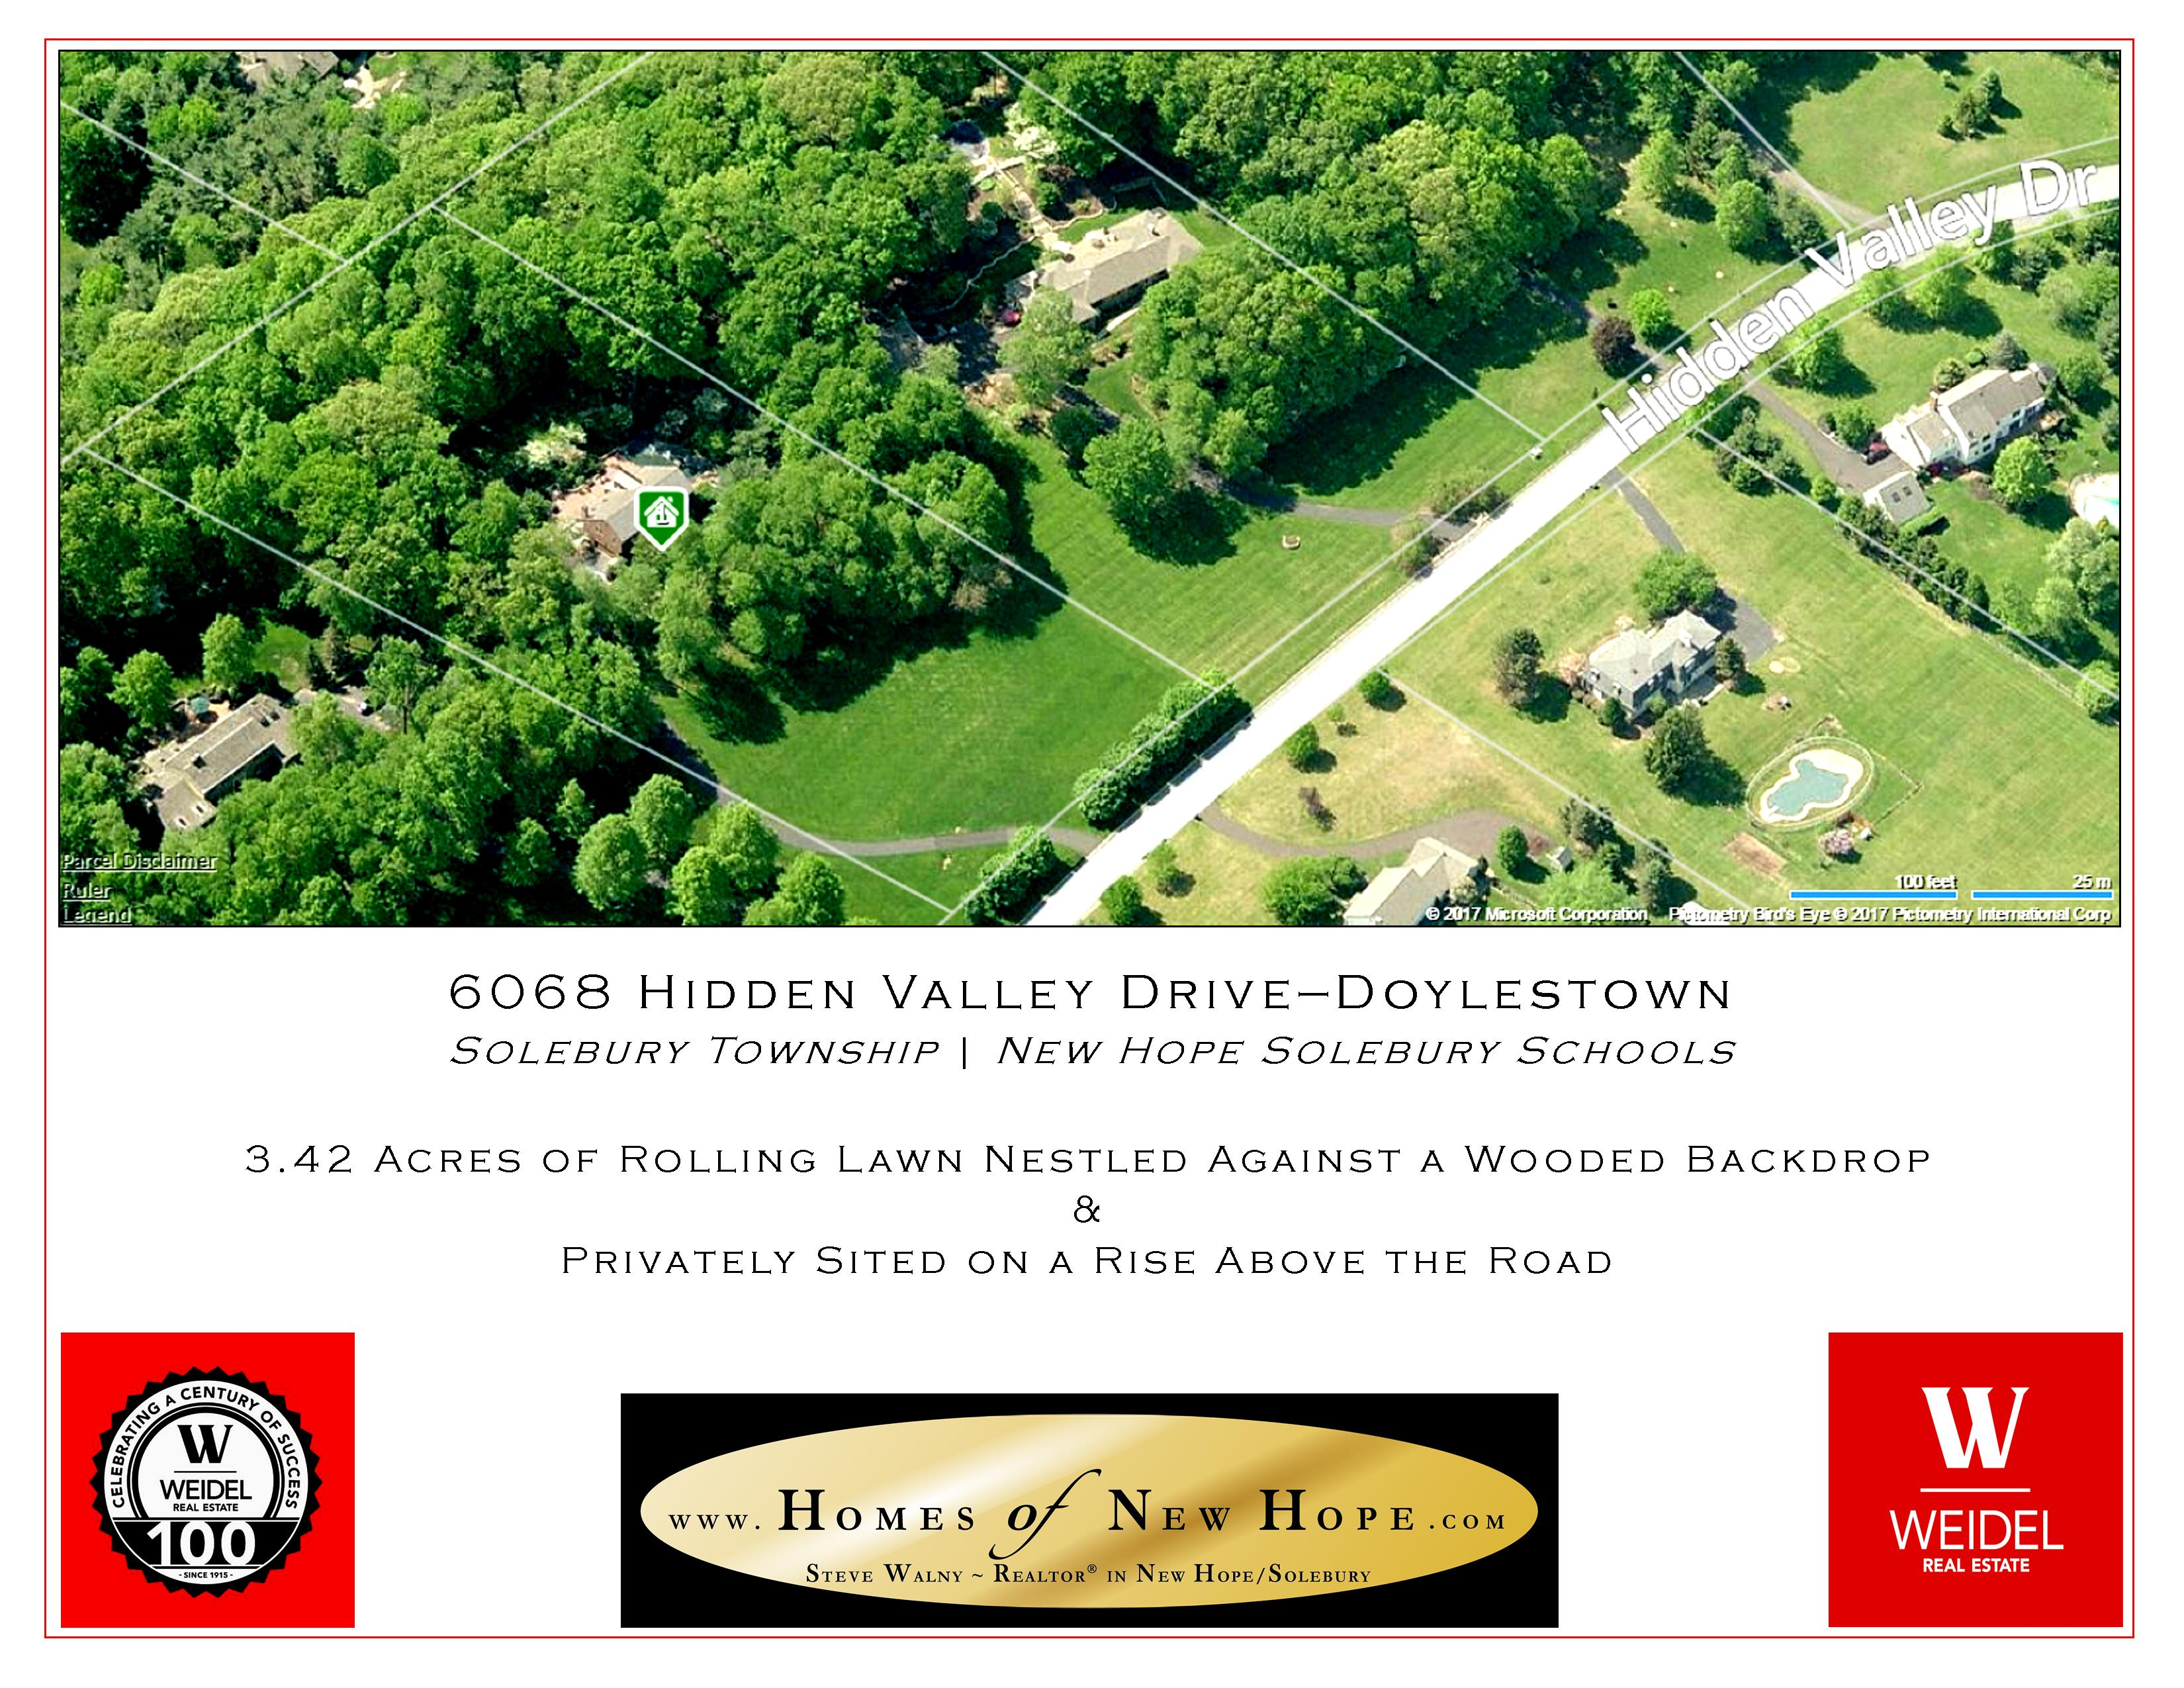 6068 Hidden Valley Drive Doylestown PA | Aerial Map | Homes of New Hope | Weidel New Hope | Weidel Doylestown